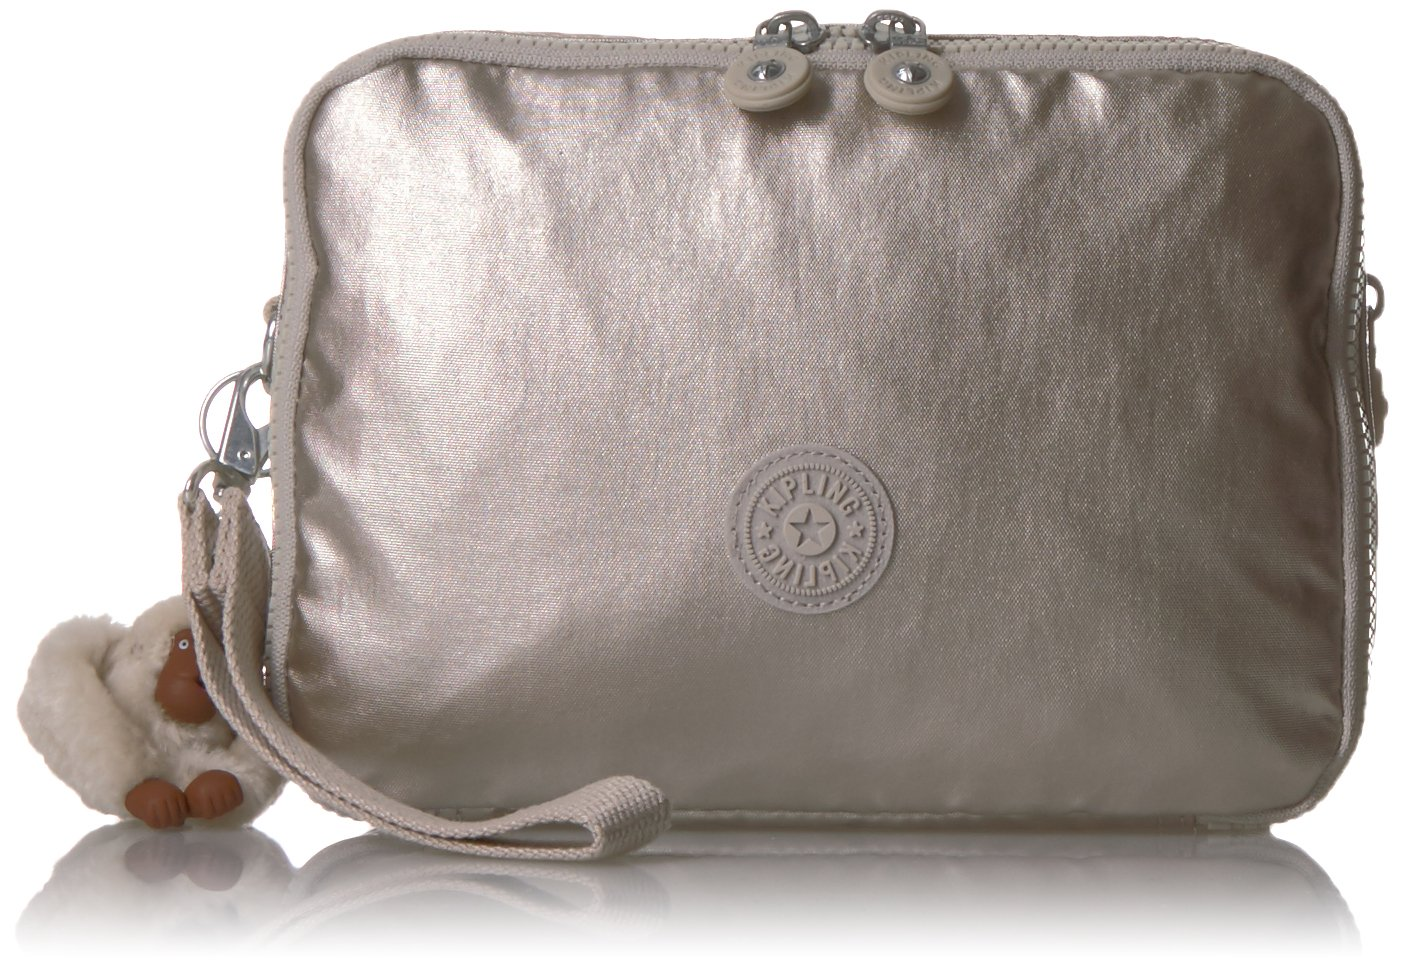 Kipling Zimma Metallic Baby Changing Pouch by Kipling